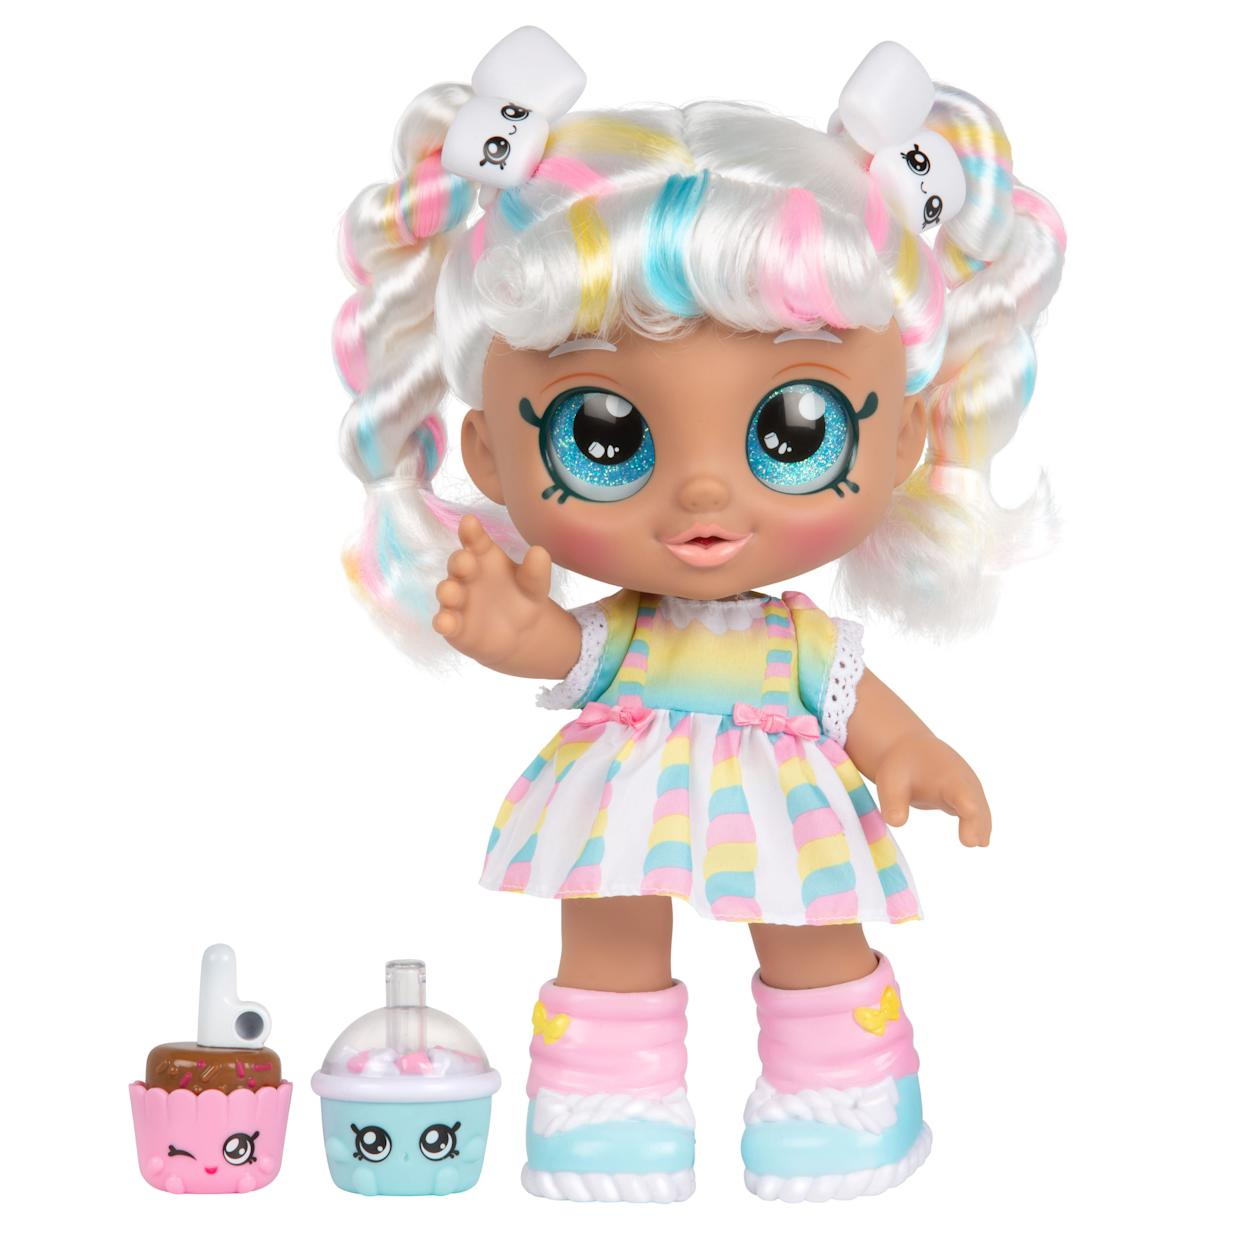 "Kindi Kids Snack Time Friends, Marsha Mello - Pre-school 10 inch doll, and 2 Shopkins accessories. Meet the Kindi Kids! The cutest Pre-Schoolers you'll ever see. These adorable girls are full of fun and play! They love attending Rainbow Kindi. A place where every day is about playing and making friends!&nbsp;<a href=""https://fave.co/2zLS0v1"" rel=""nofollow noopener"" target=""_blank"" data-ylk=""slk:Find it for $25 at Walmart"" class=""link rapid-noclick-resp""><strong> Find it for $25 at Walmart</strong> </a>."